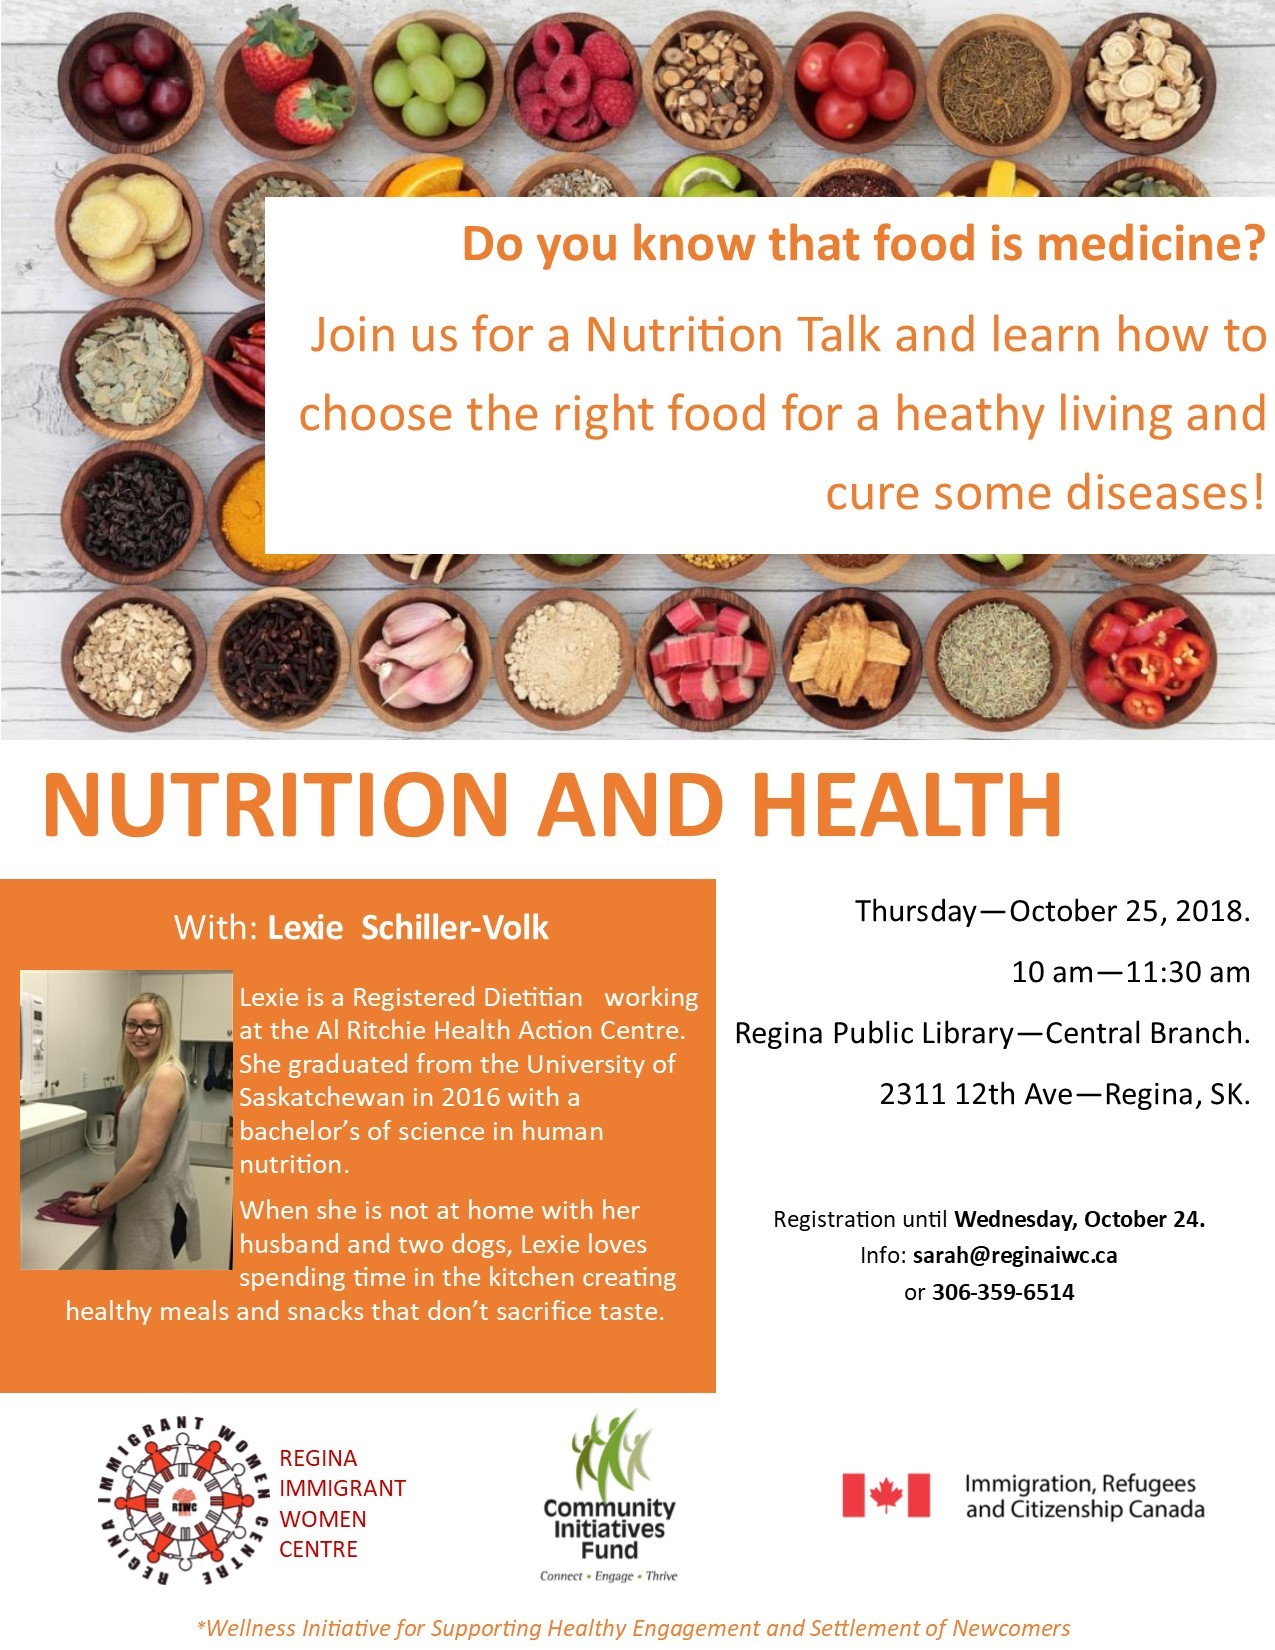 Nutritional Education Session - Oct 25th  - Image 1